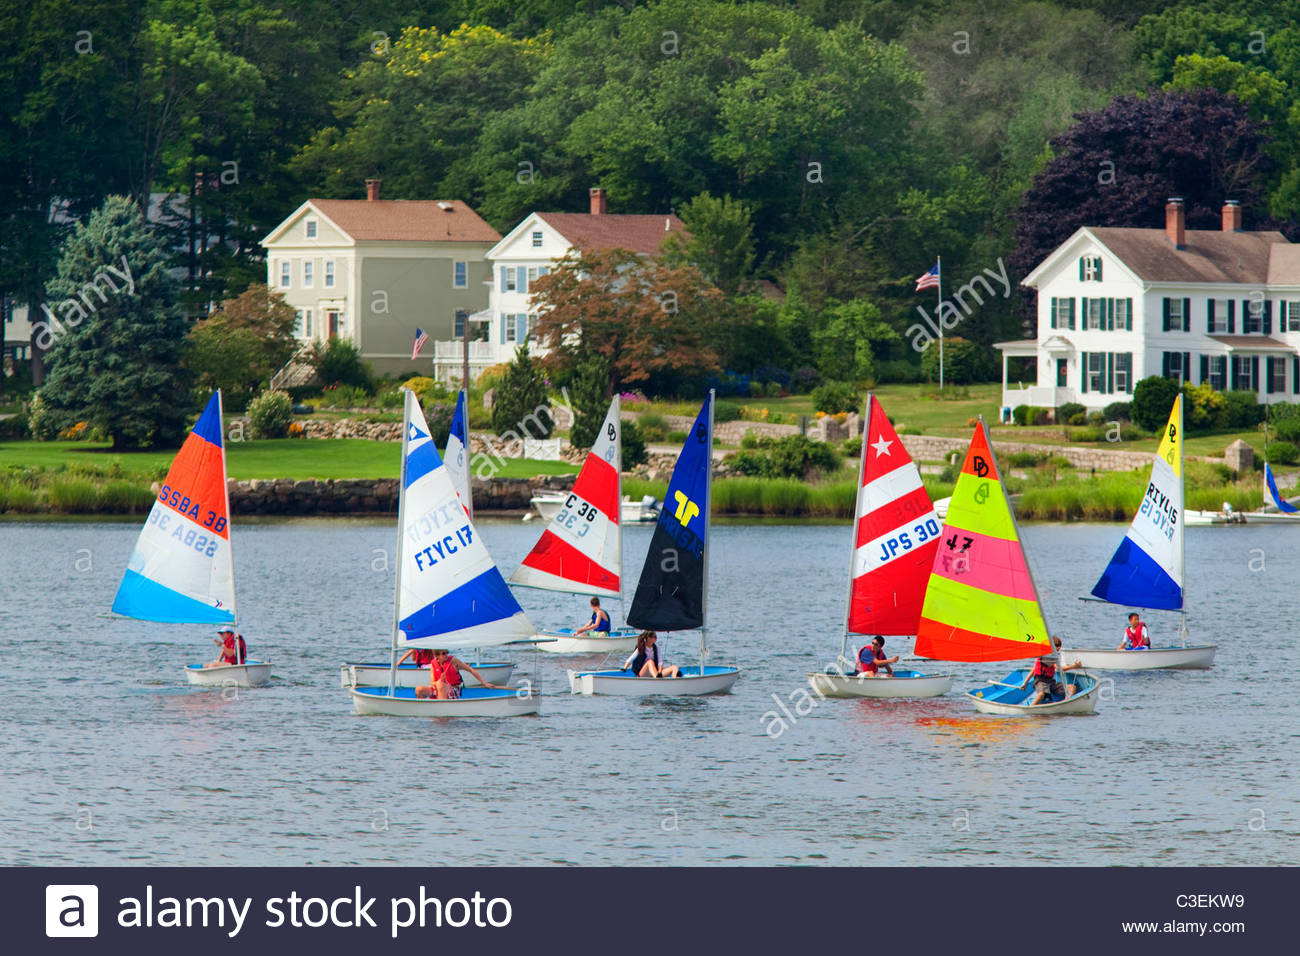 Children in fleet of racing sailboats in the Mystic River, with historic houses in background. Mystic, Connecticut - Stock Image